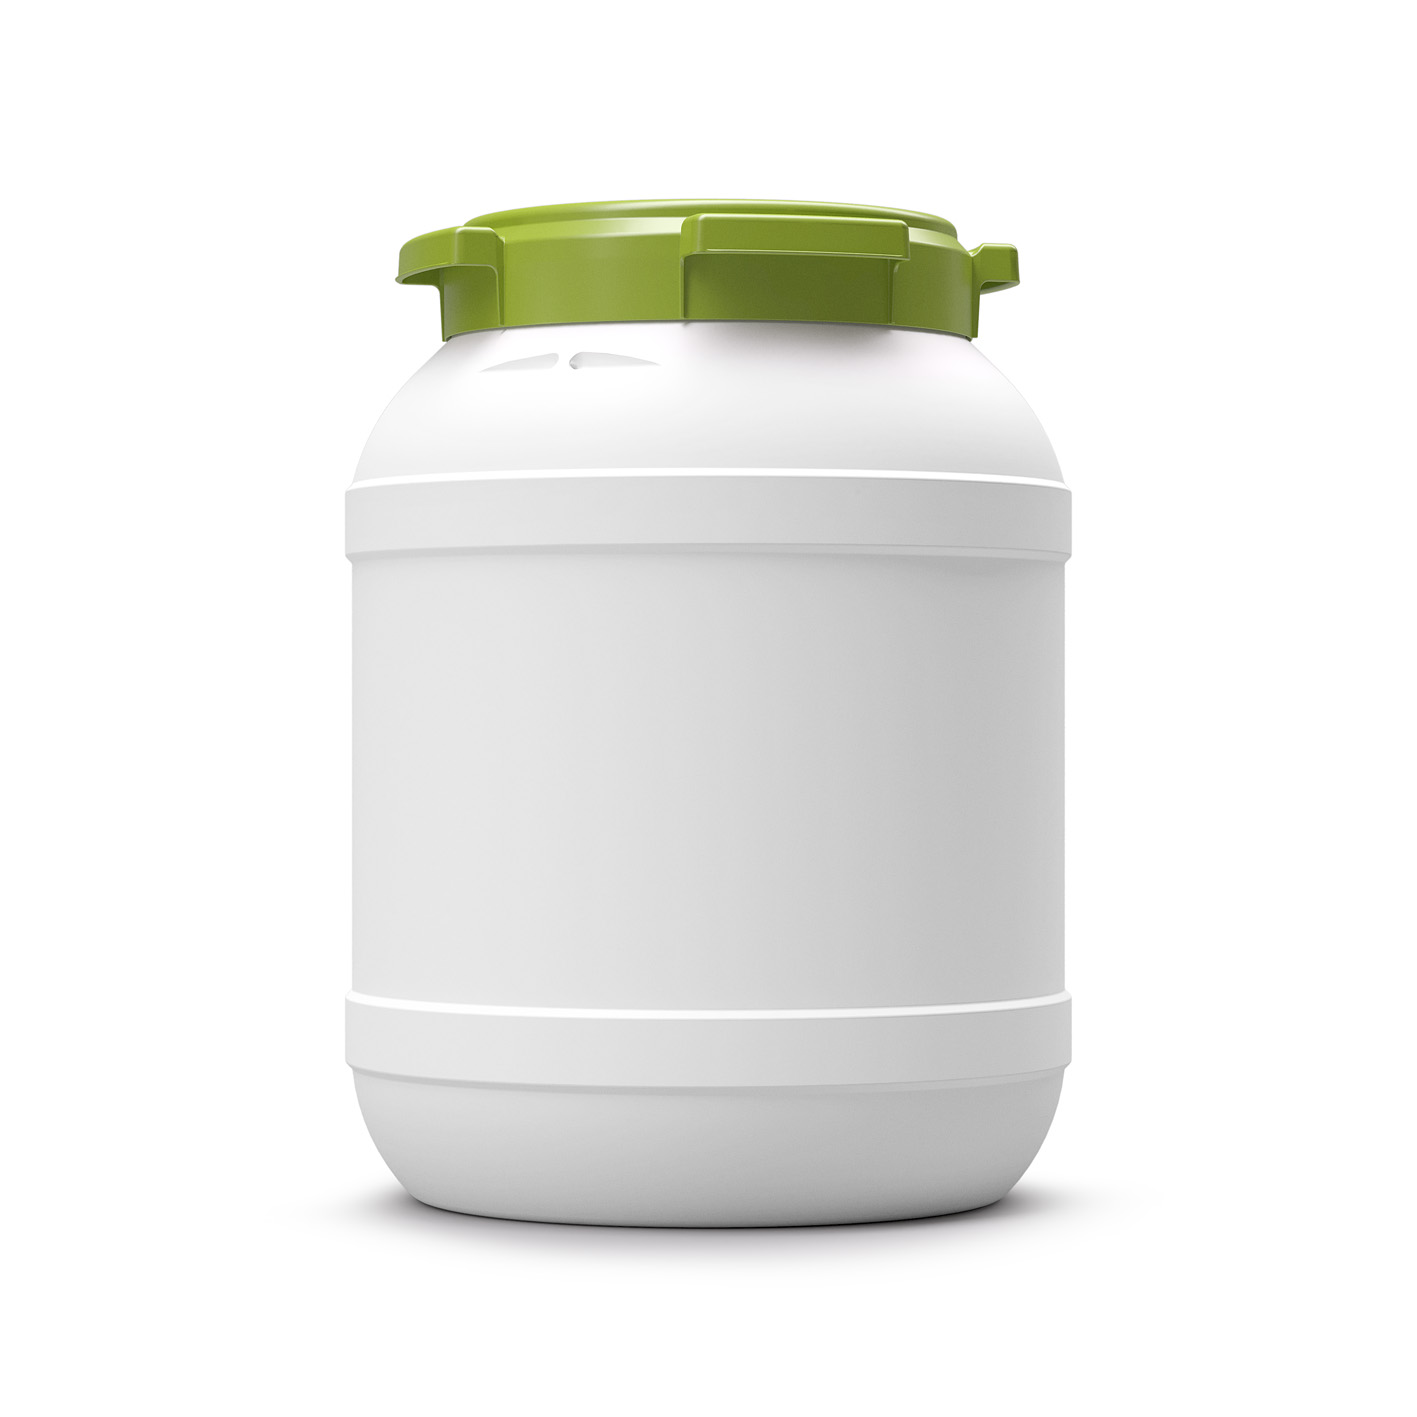 26 liter Biobased wide neck drum